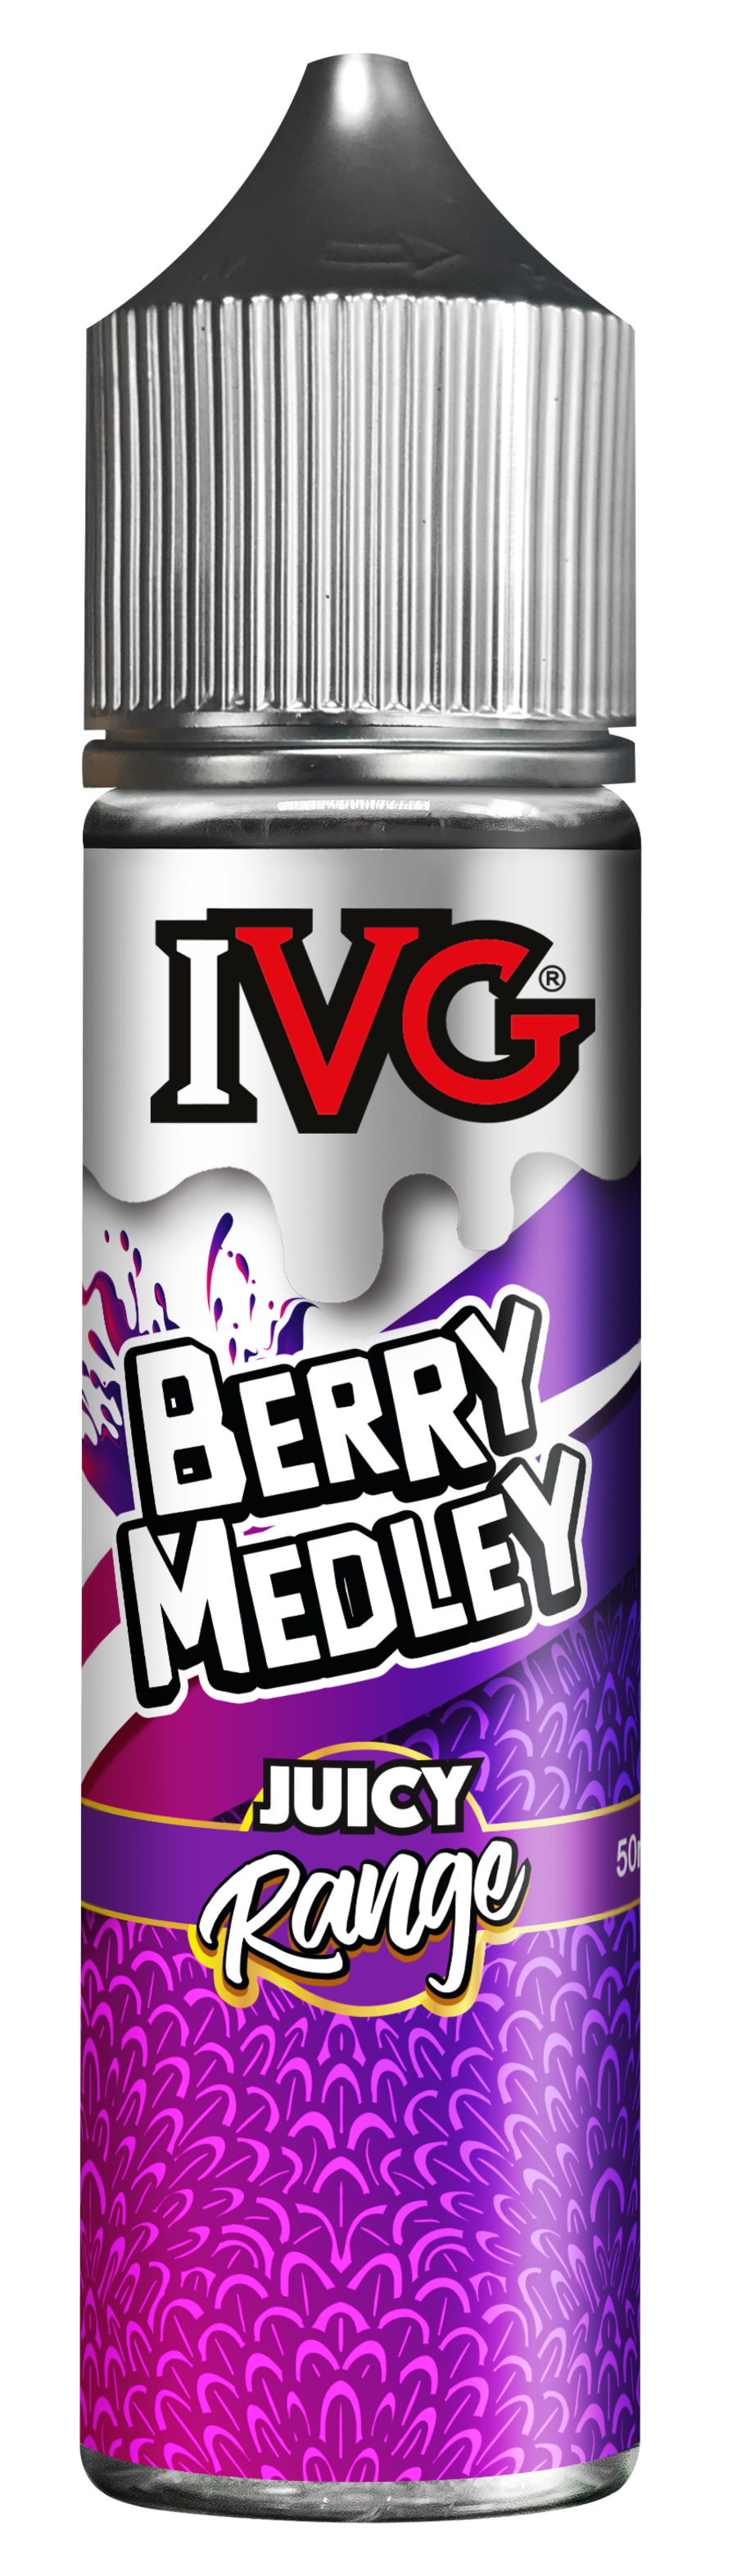 Berry Medley By I VG Juicy 50ml